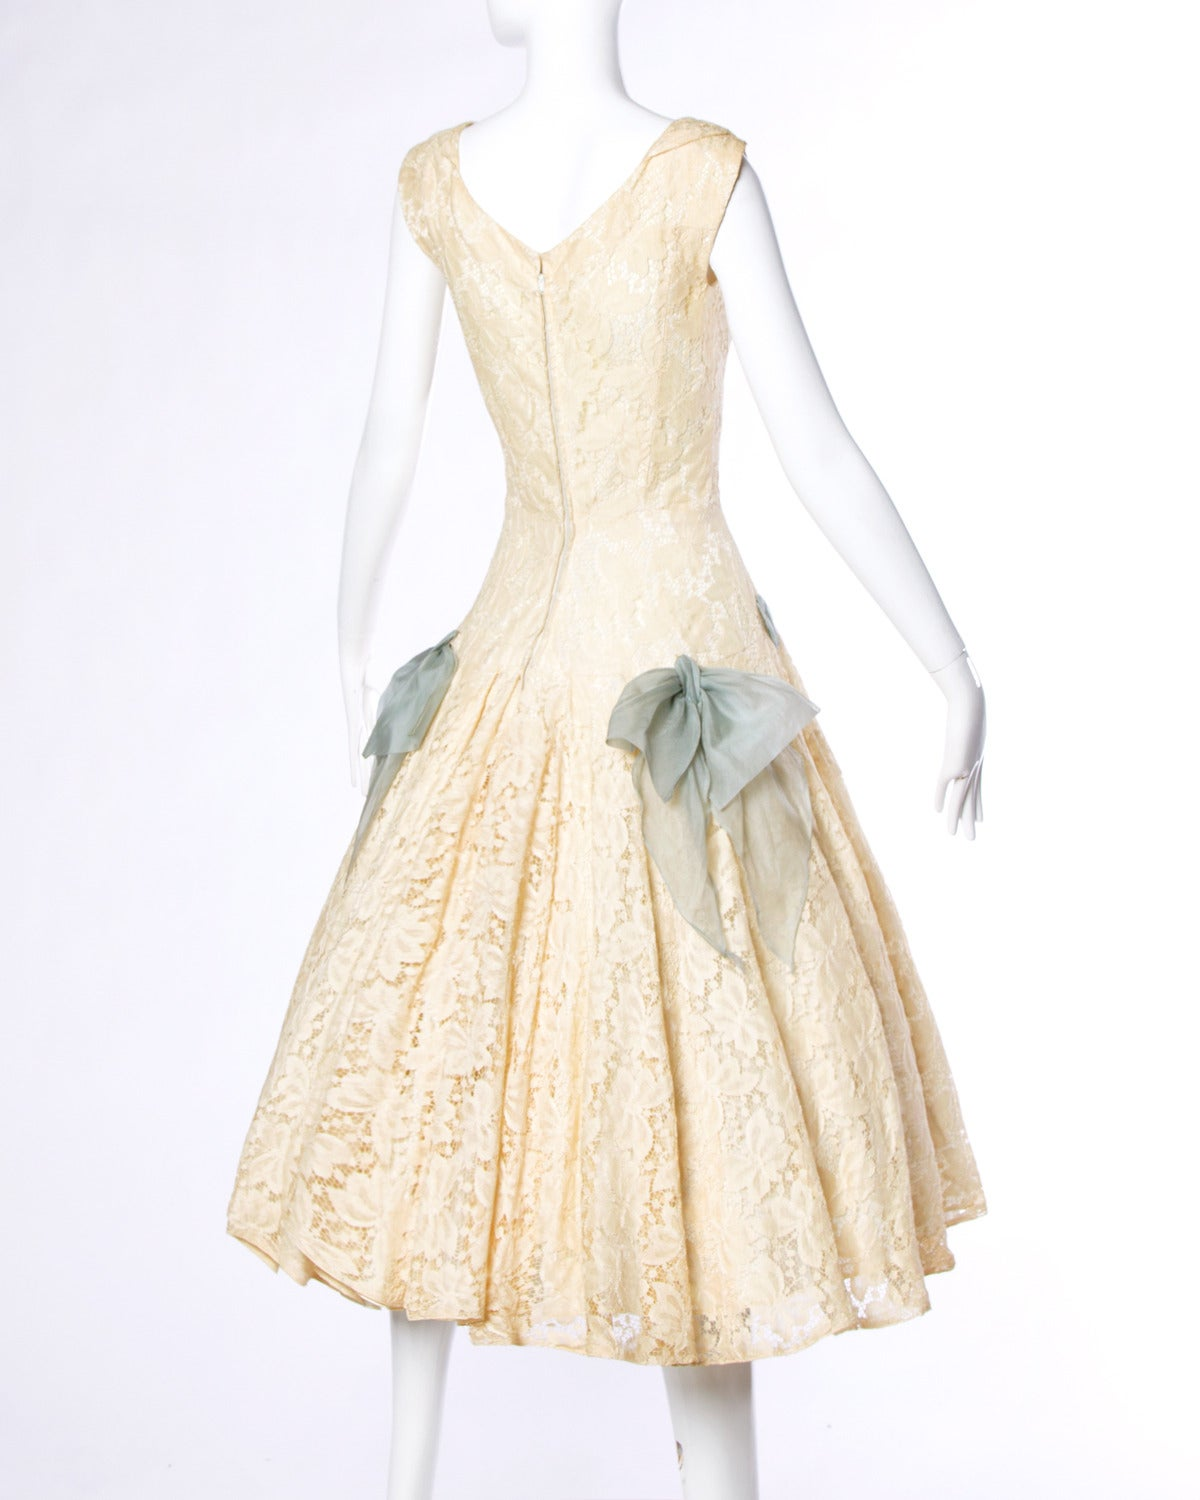 Vintage 1950s 50s Cream Lace Party Dress with Organza Lace Up Ribbon 2